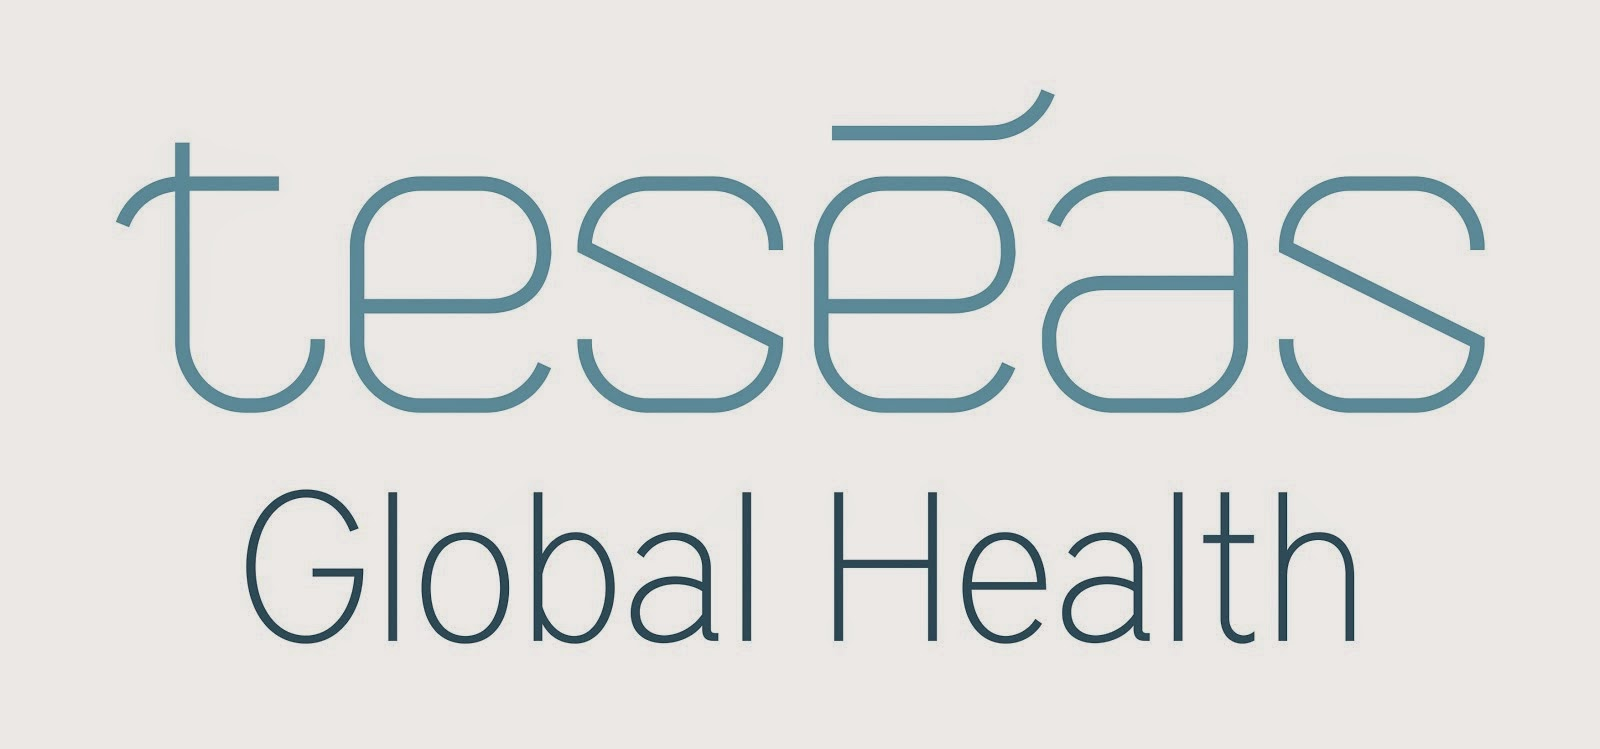 Teseas Global Health